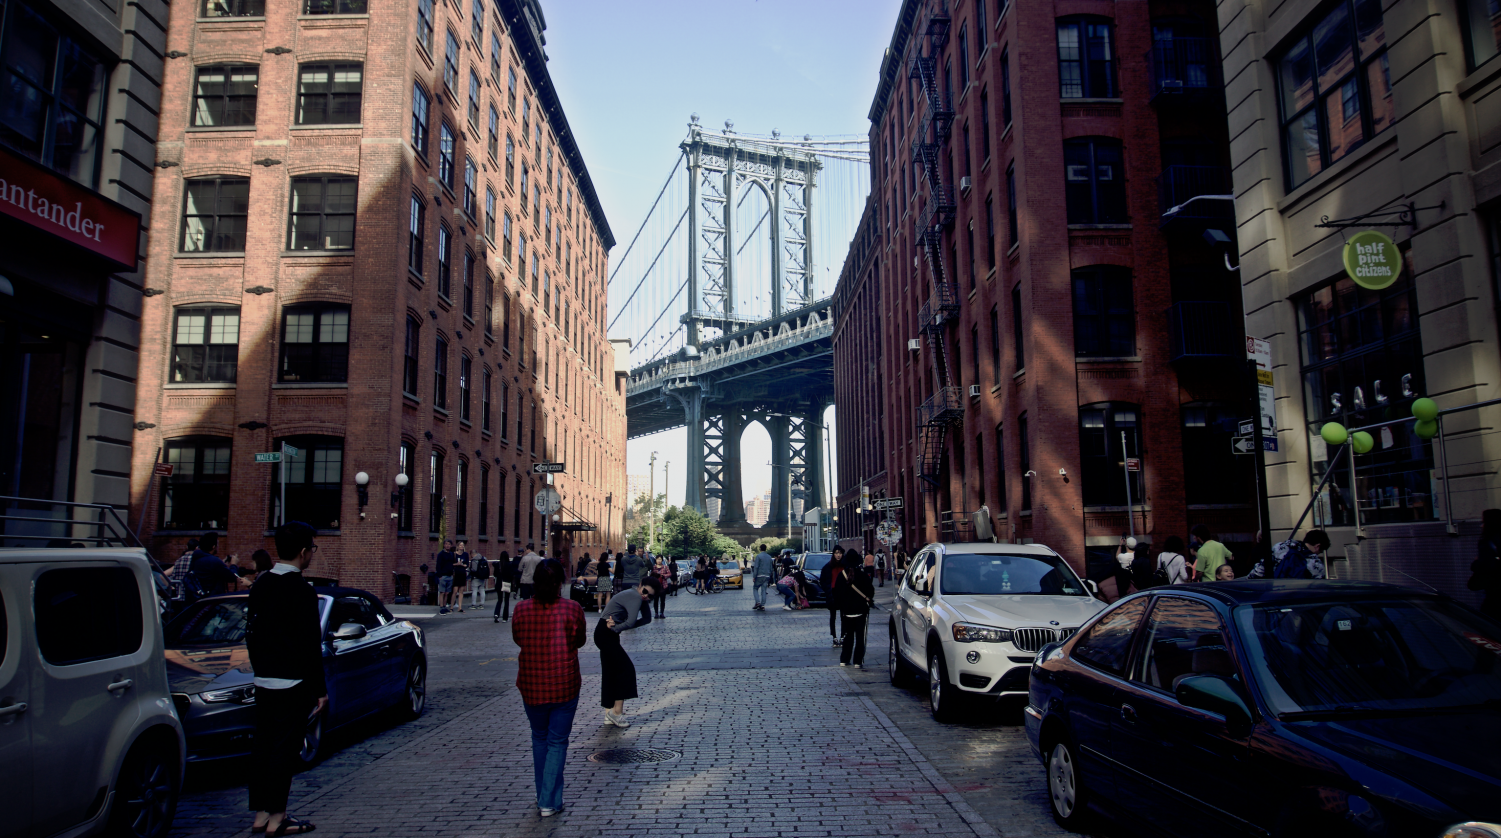 The Manhattan Bridge archway is among the many things one should see when visiting the Dumbo neighborhood in Brooklyn.